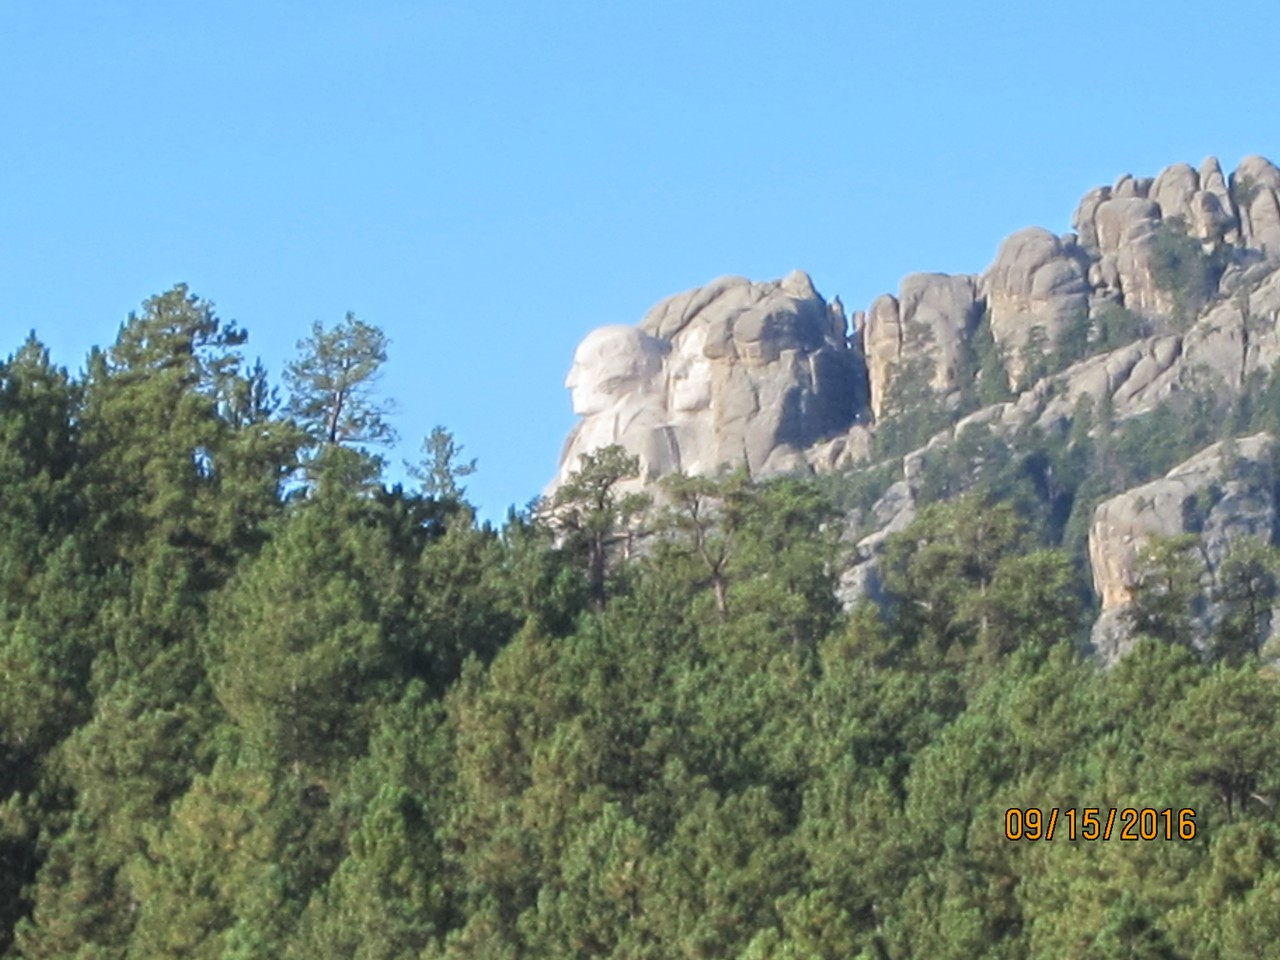 Mt Rushmore from room